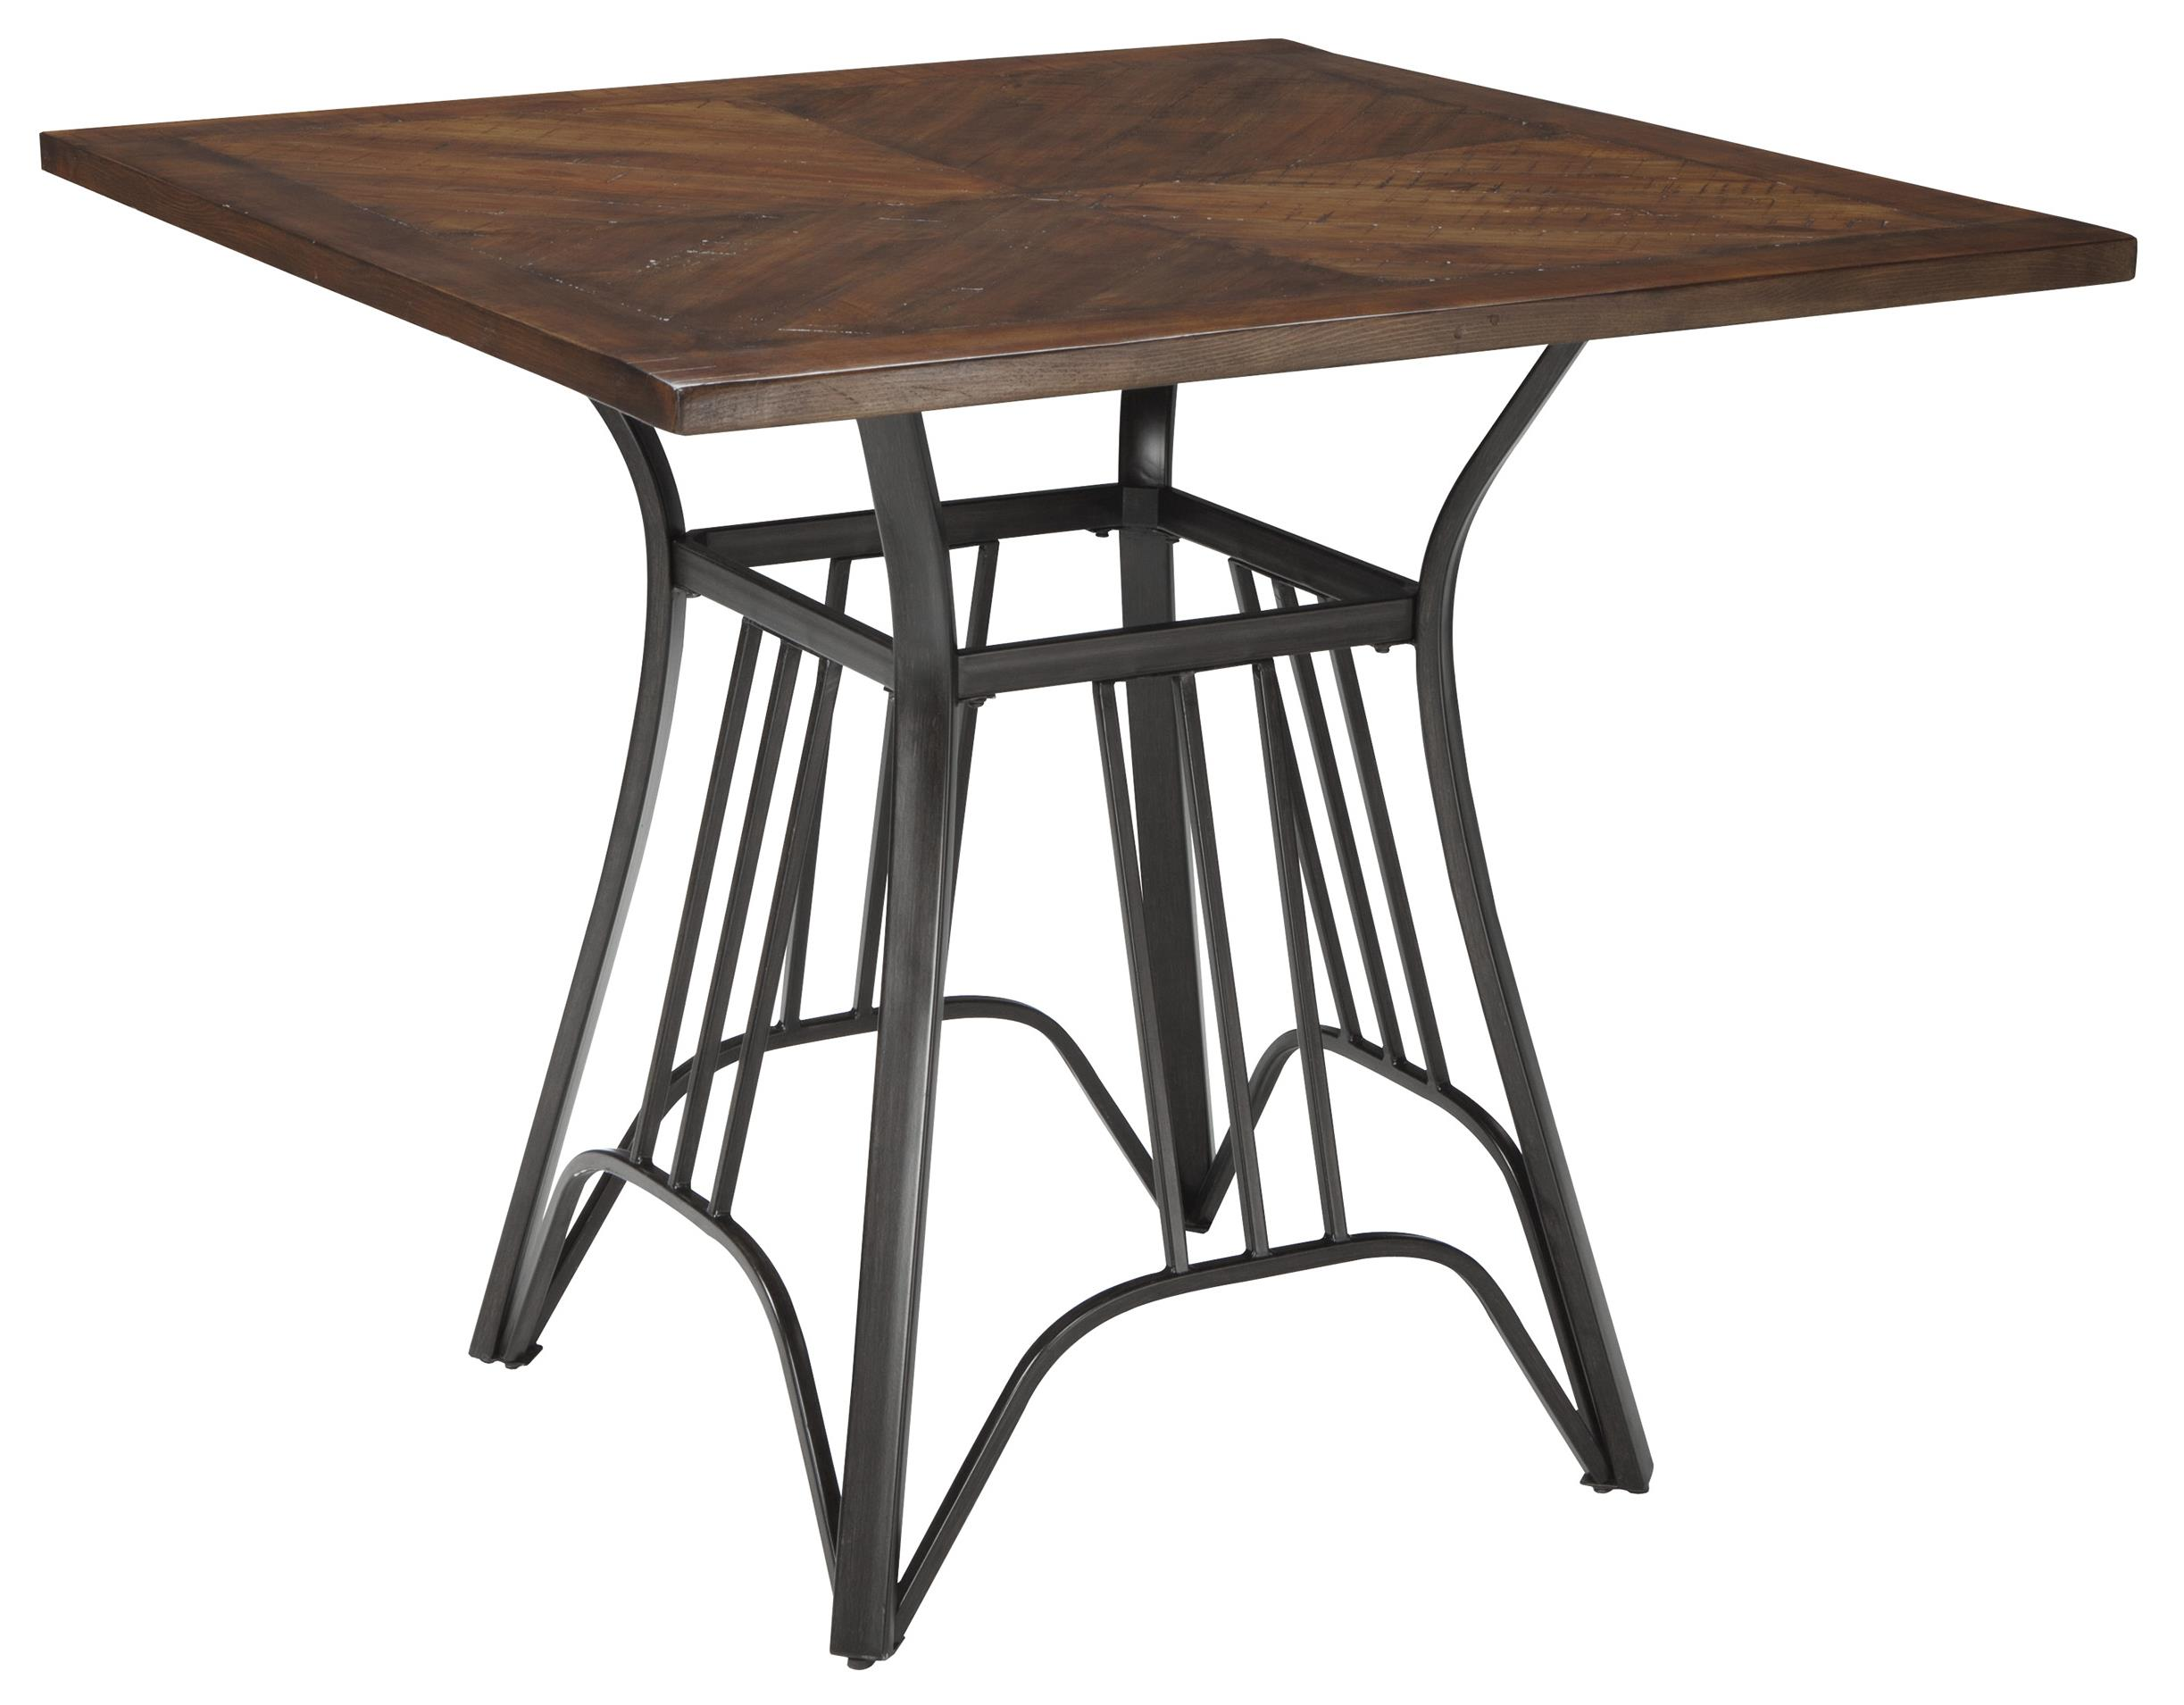 Signature Design by Ashley Zanilly Square Dining Room Counter Table - Item Number: D507-13